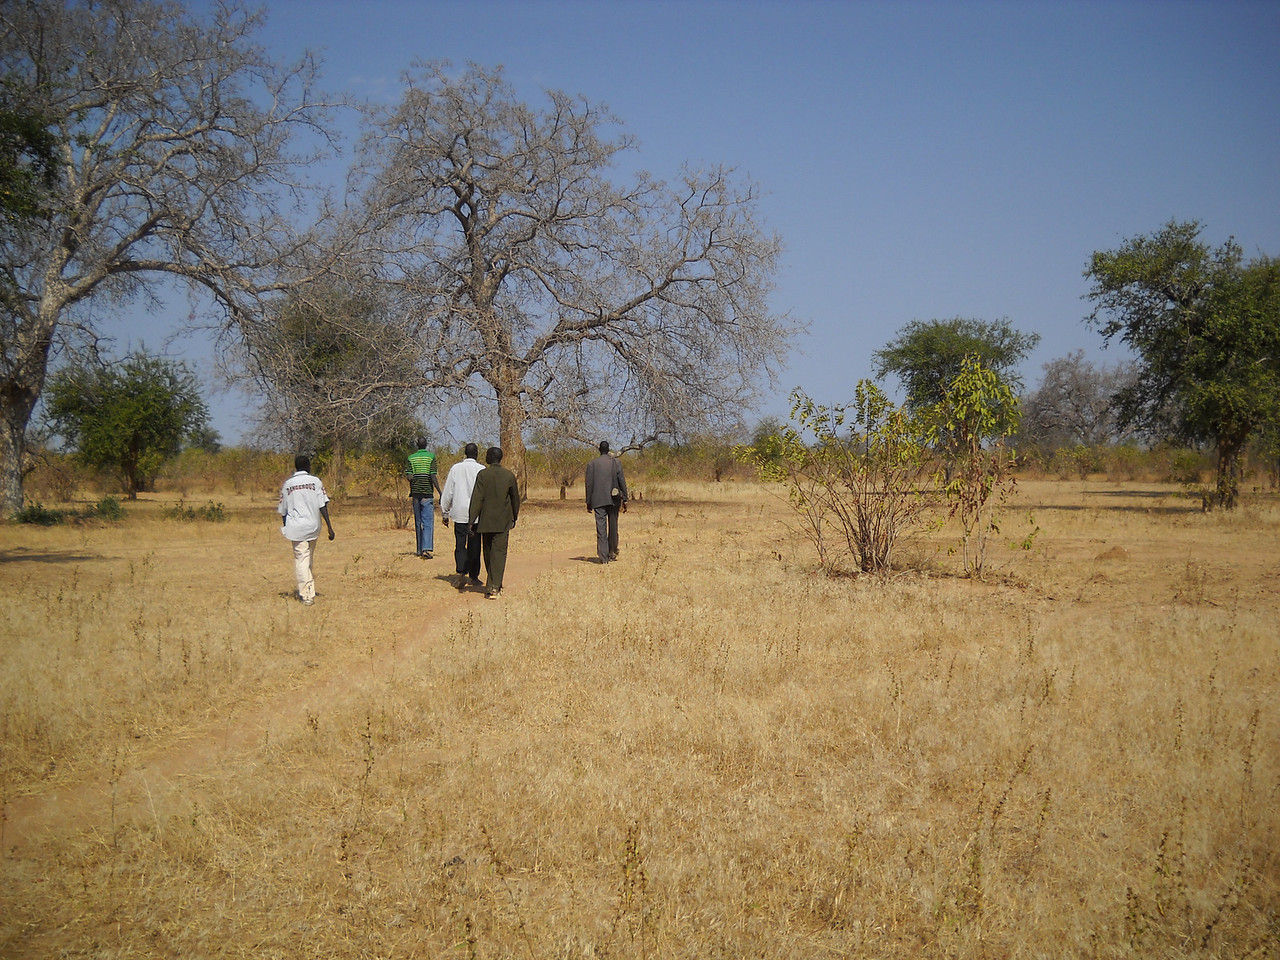 The site where the Wunlang Multi-purpose Community Center will be located is in the village of Rhum Athoi, Wunlang Payam, Aweil East County.